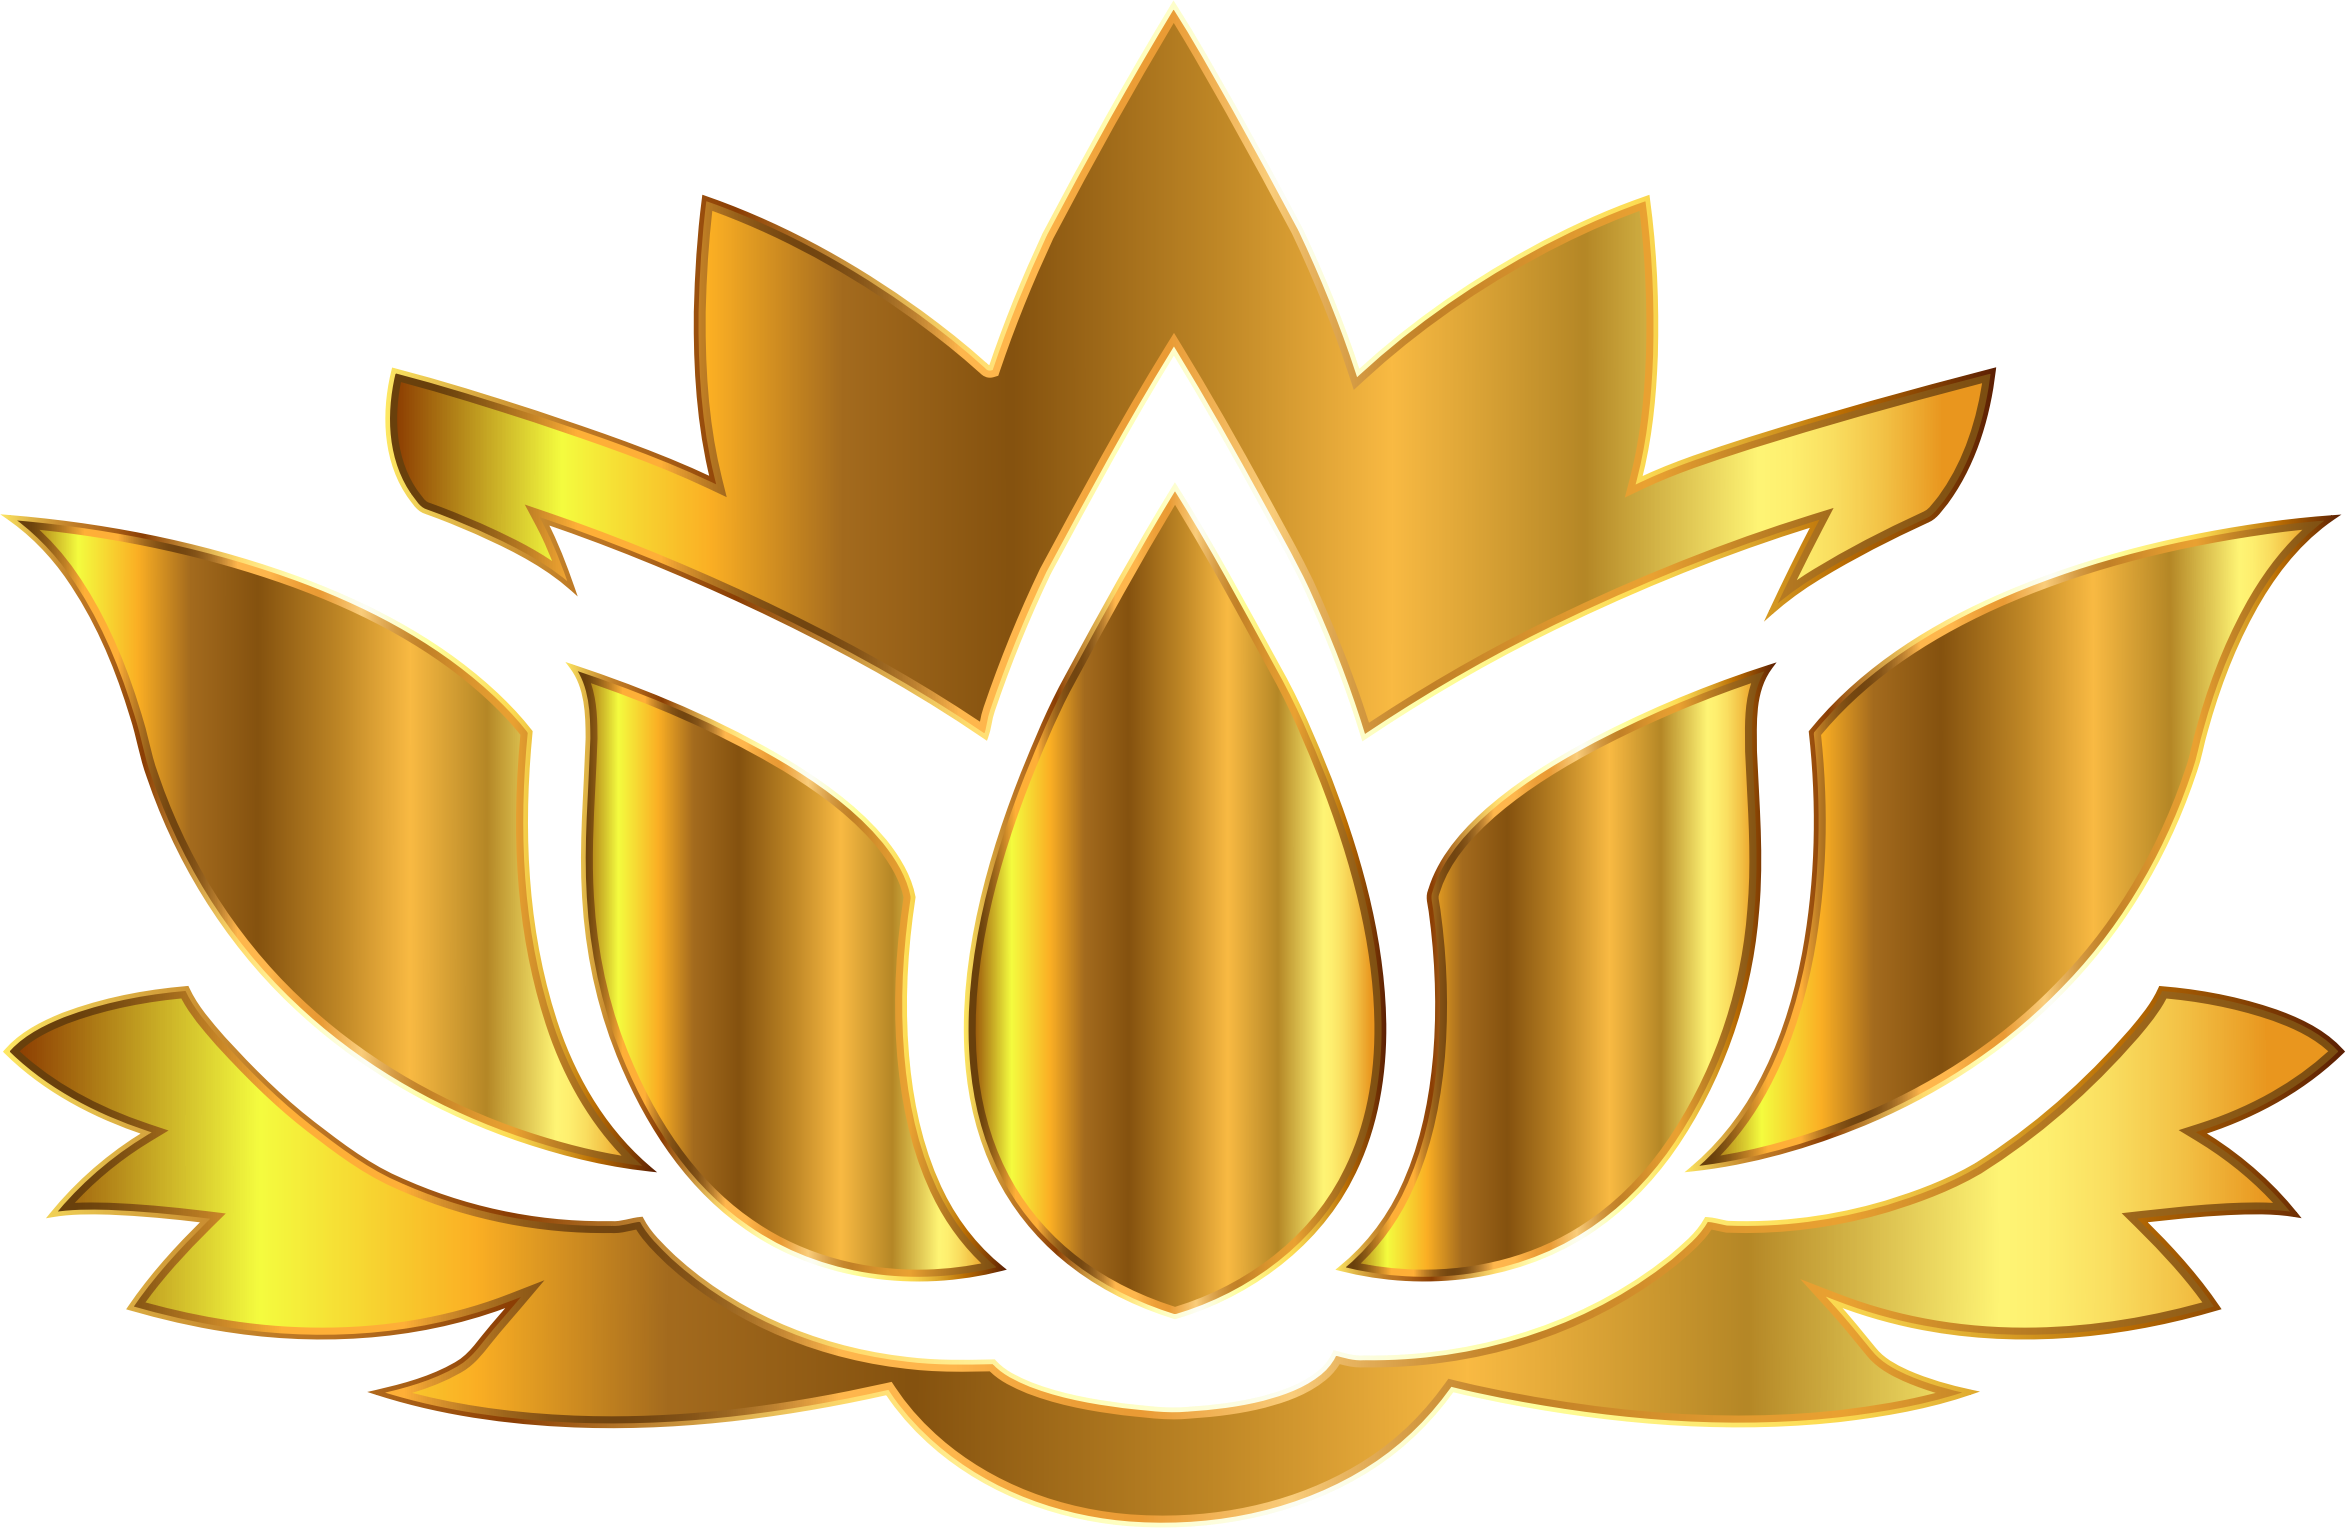 Gold Lotus Flower Silhouette No Background by GDJ